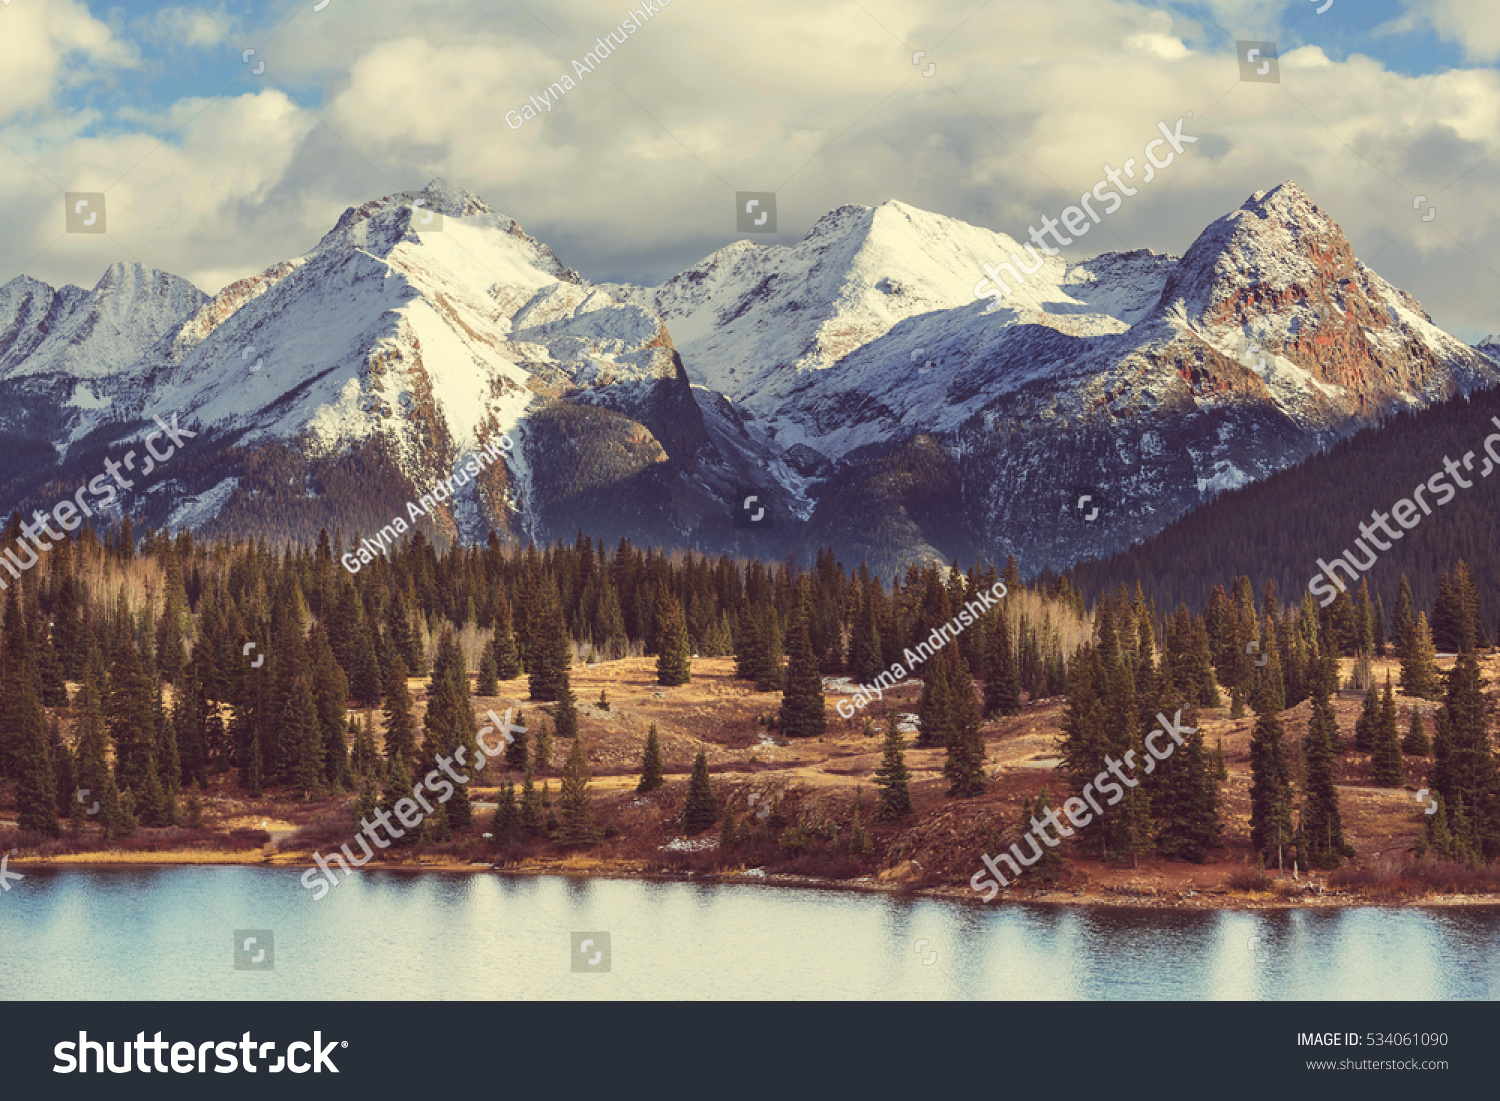 Mountain Landscape Colorado Rocky Mountains Colorado Stock Photo - United states mountains